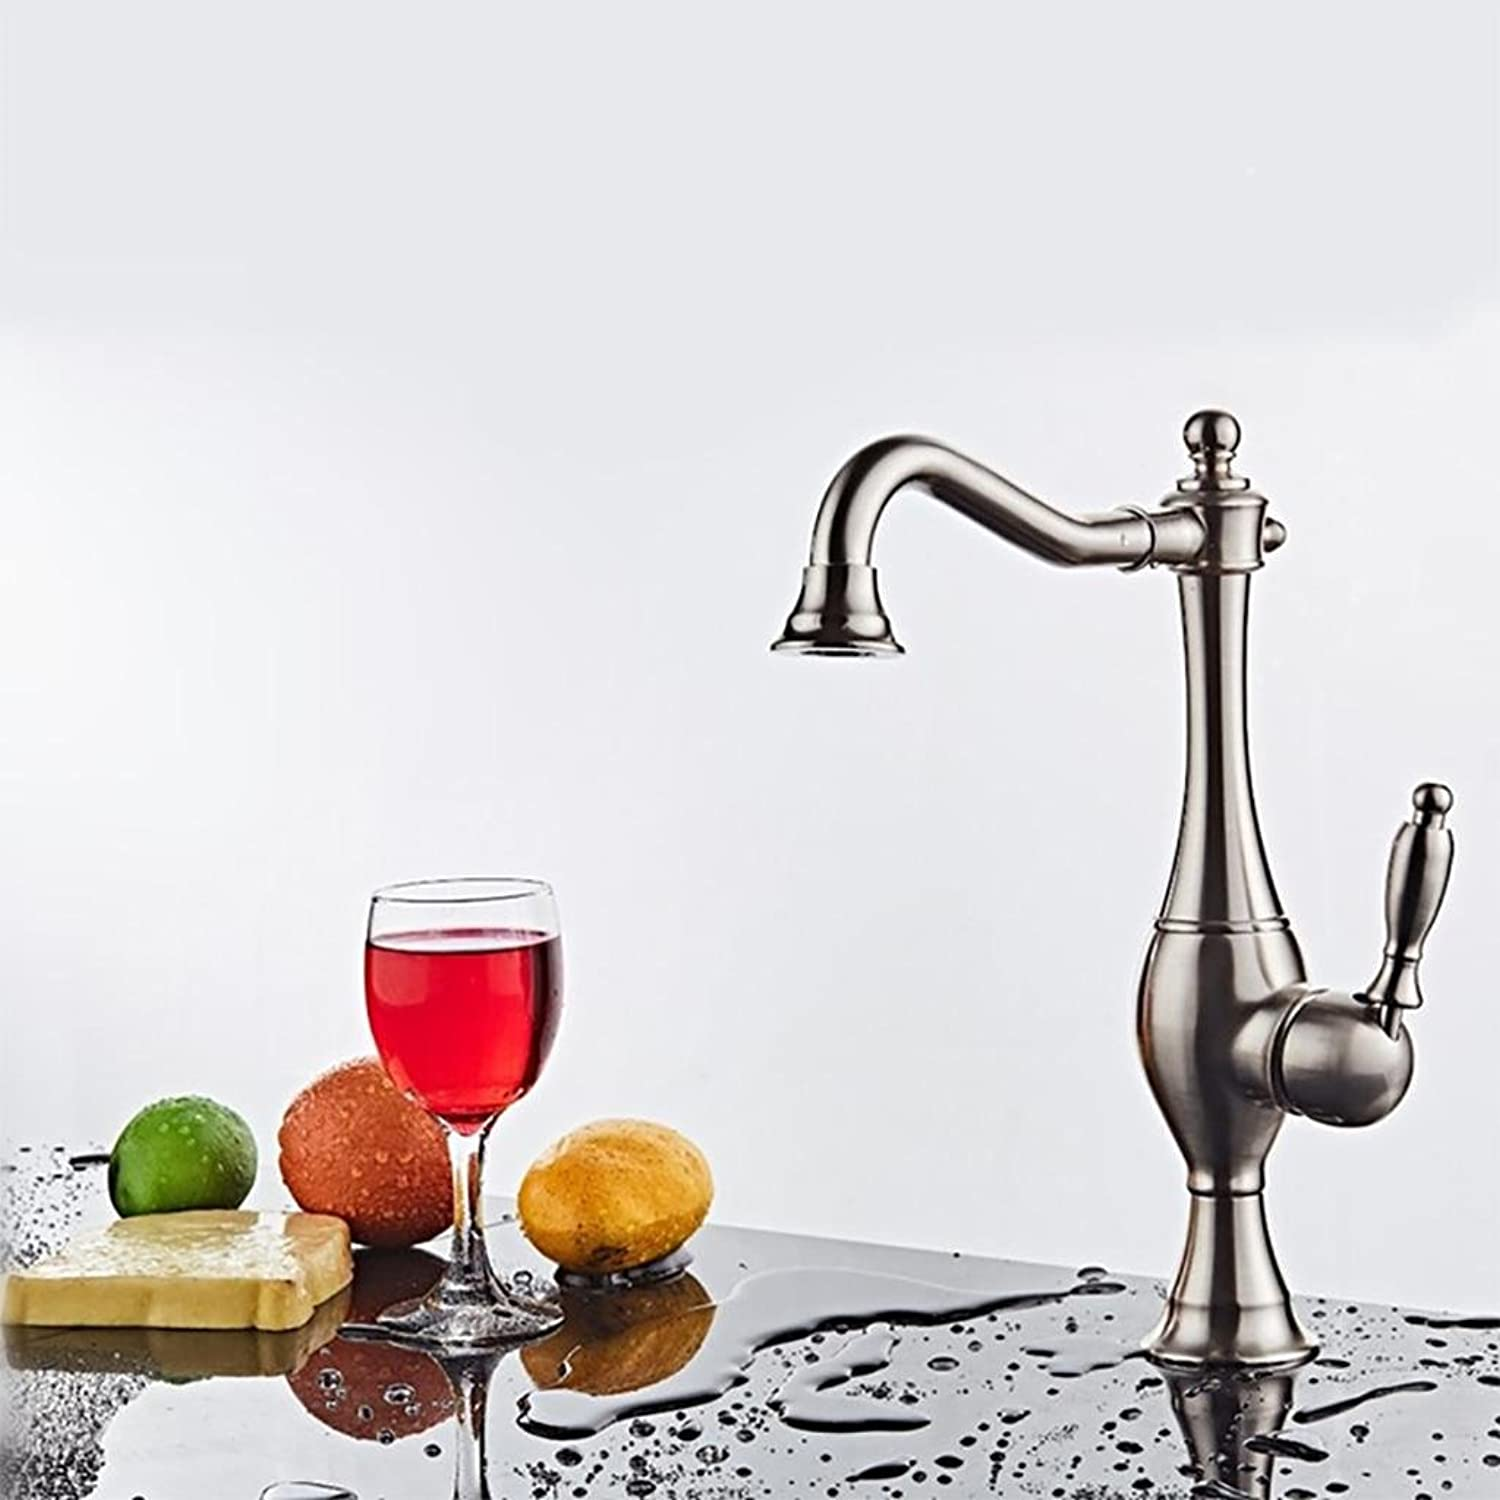 BKPH Hot and cold faucet European-style Single Handle Single Hole redating basin Kitchen Sink